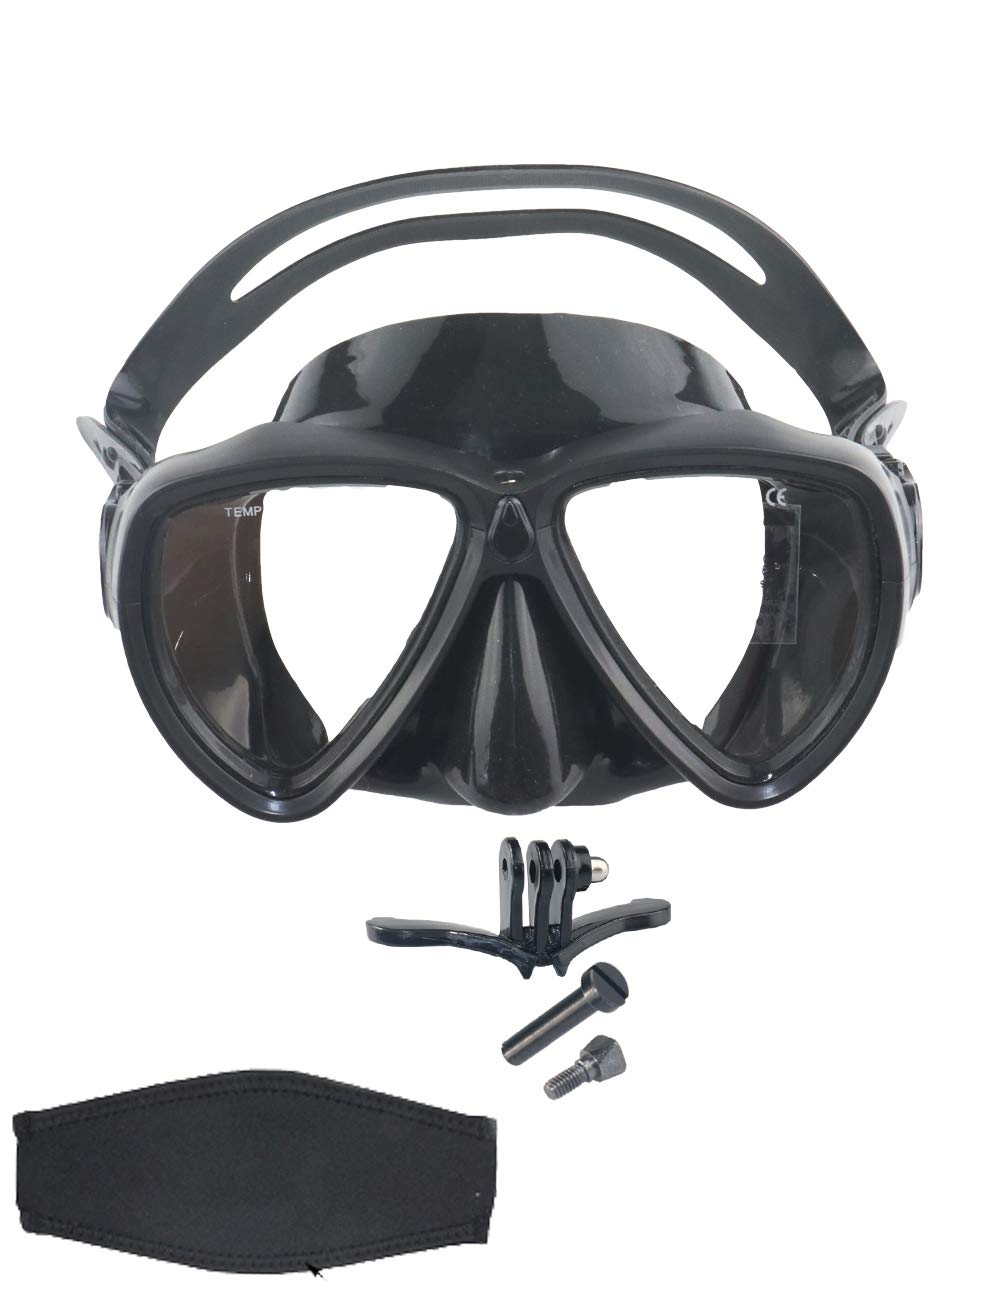 31a9be69d4d Snorkel Mask Scuba Dive Mask Glasses Snorkeling Gear Silicone Diving Goggles  Kit Impact Resistance Anti-leak Anti-fog Wide View Fit Adult Kid Neoprene  Mask ...